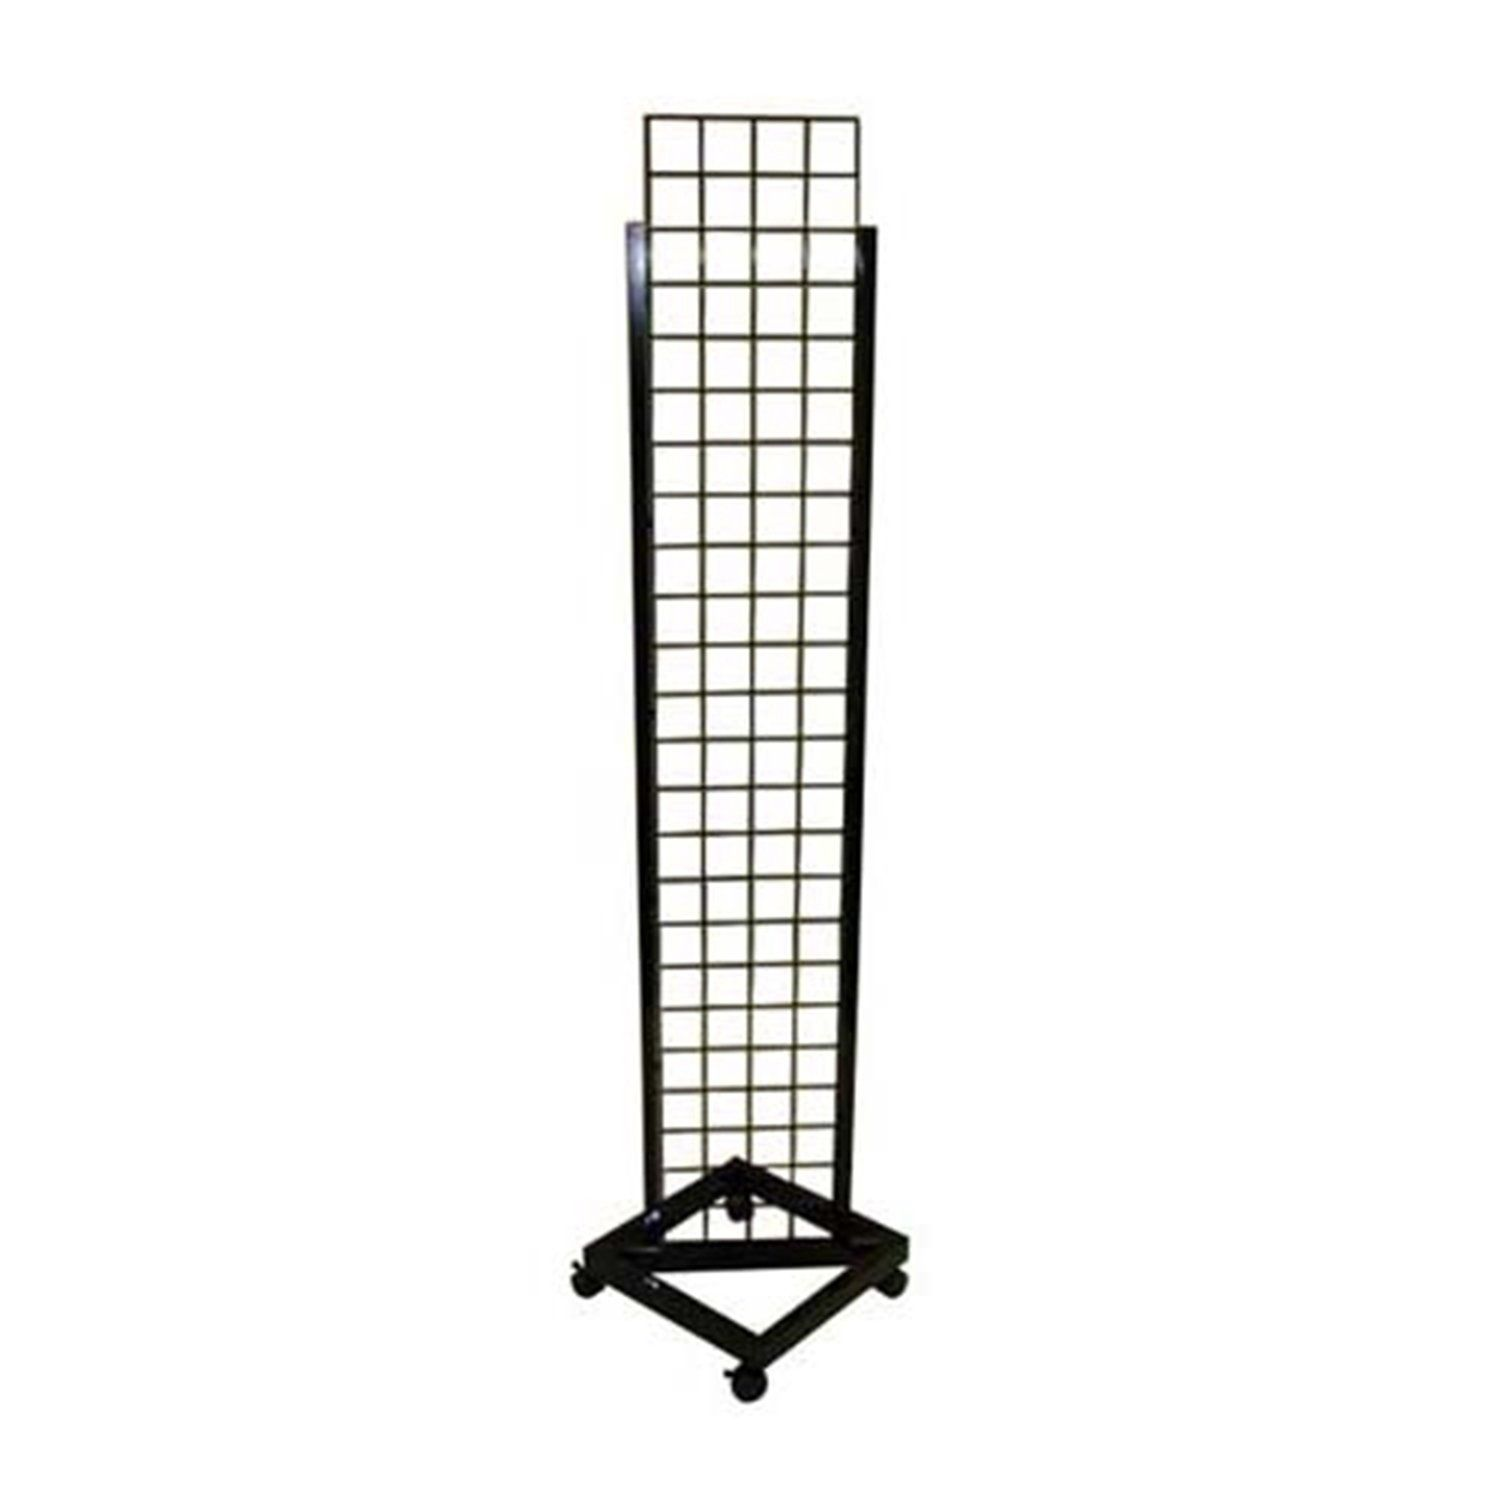 "14"" W X 72"" H Grid Tower With Casters - Display Fixture Warehouse Retail"